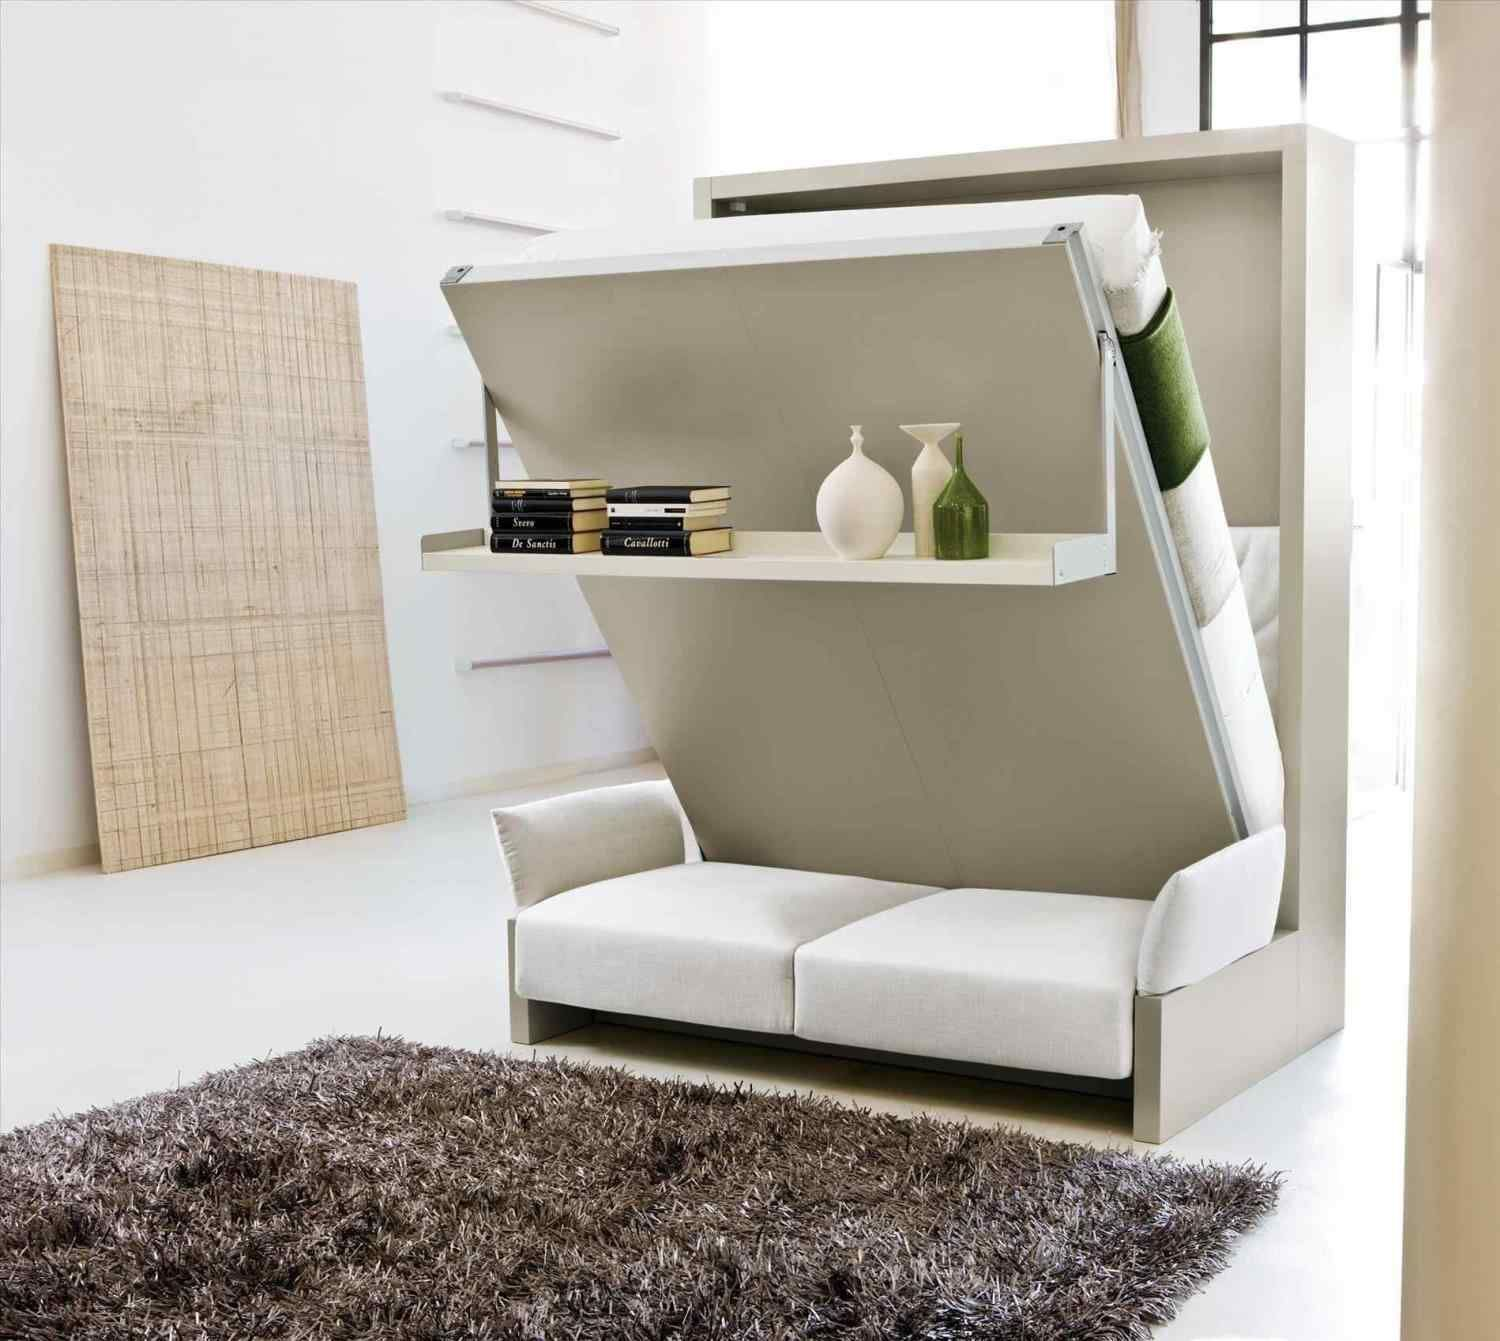 Cool Convertible Furniture Designs Designs Ideas On Dornob